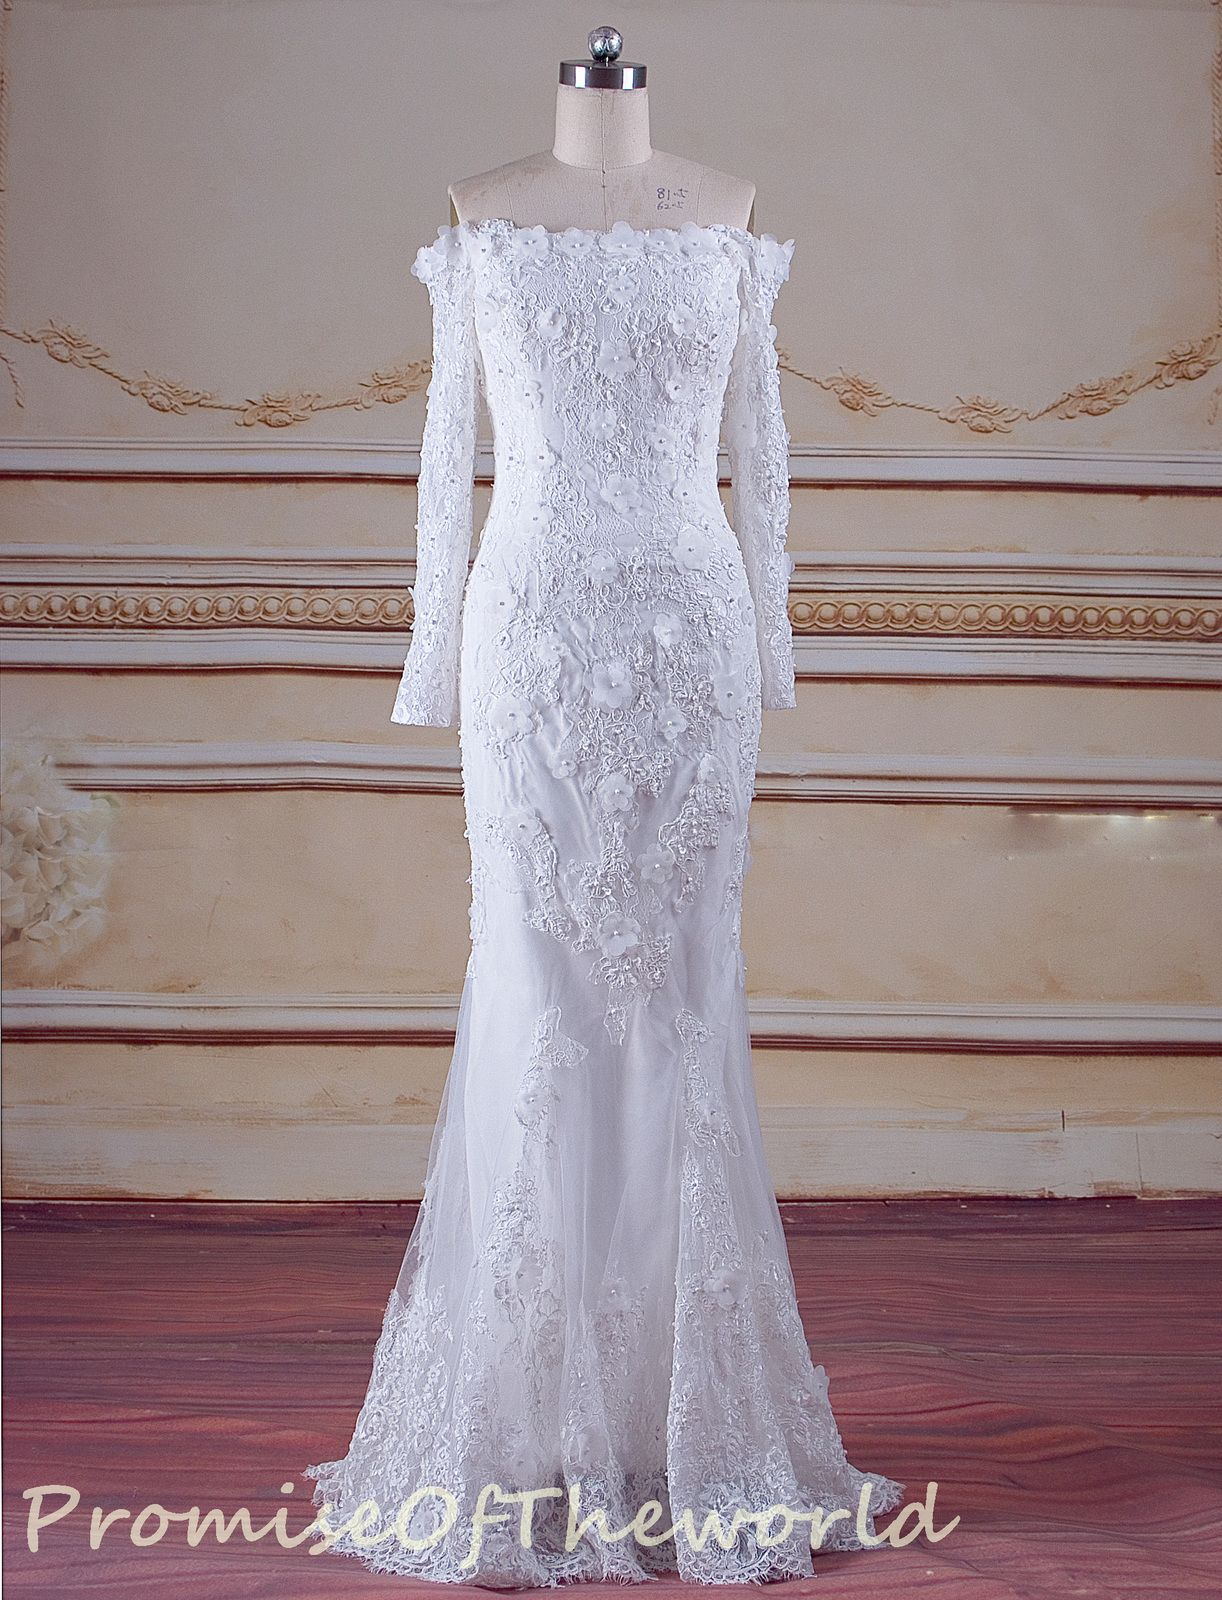 Mermaid wedding dresses with feather bottom  Lace ivory off shoulder long sleeves wedding dress with detachable